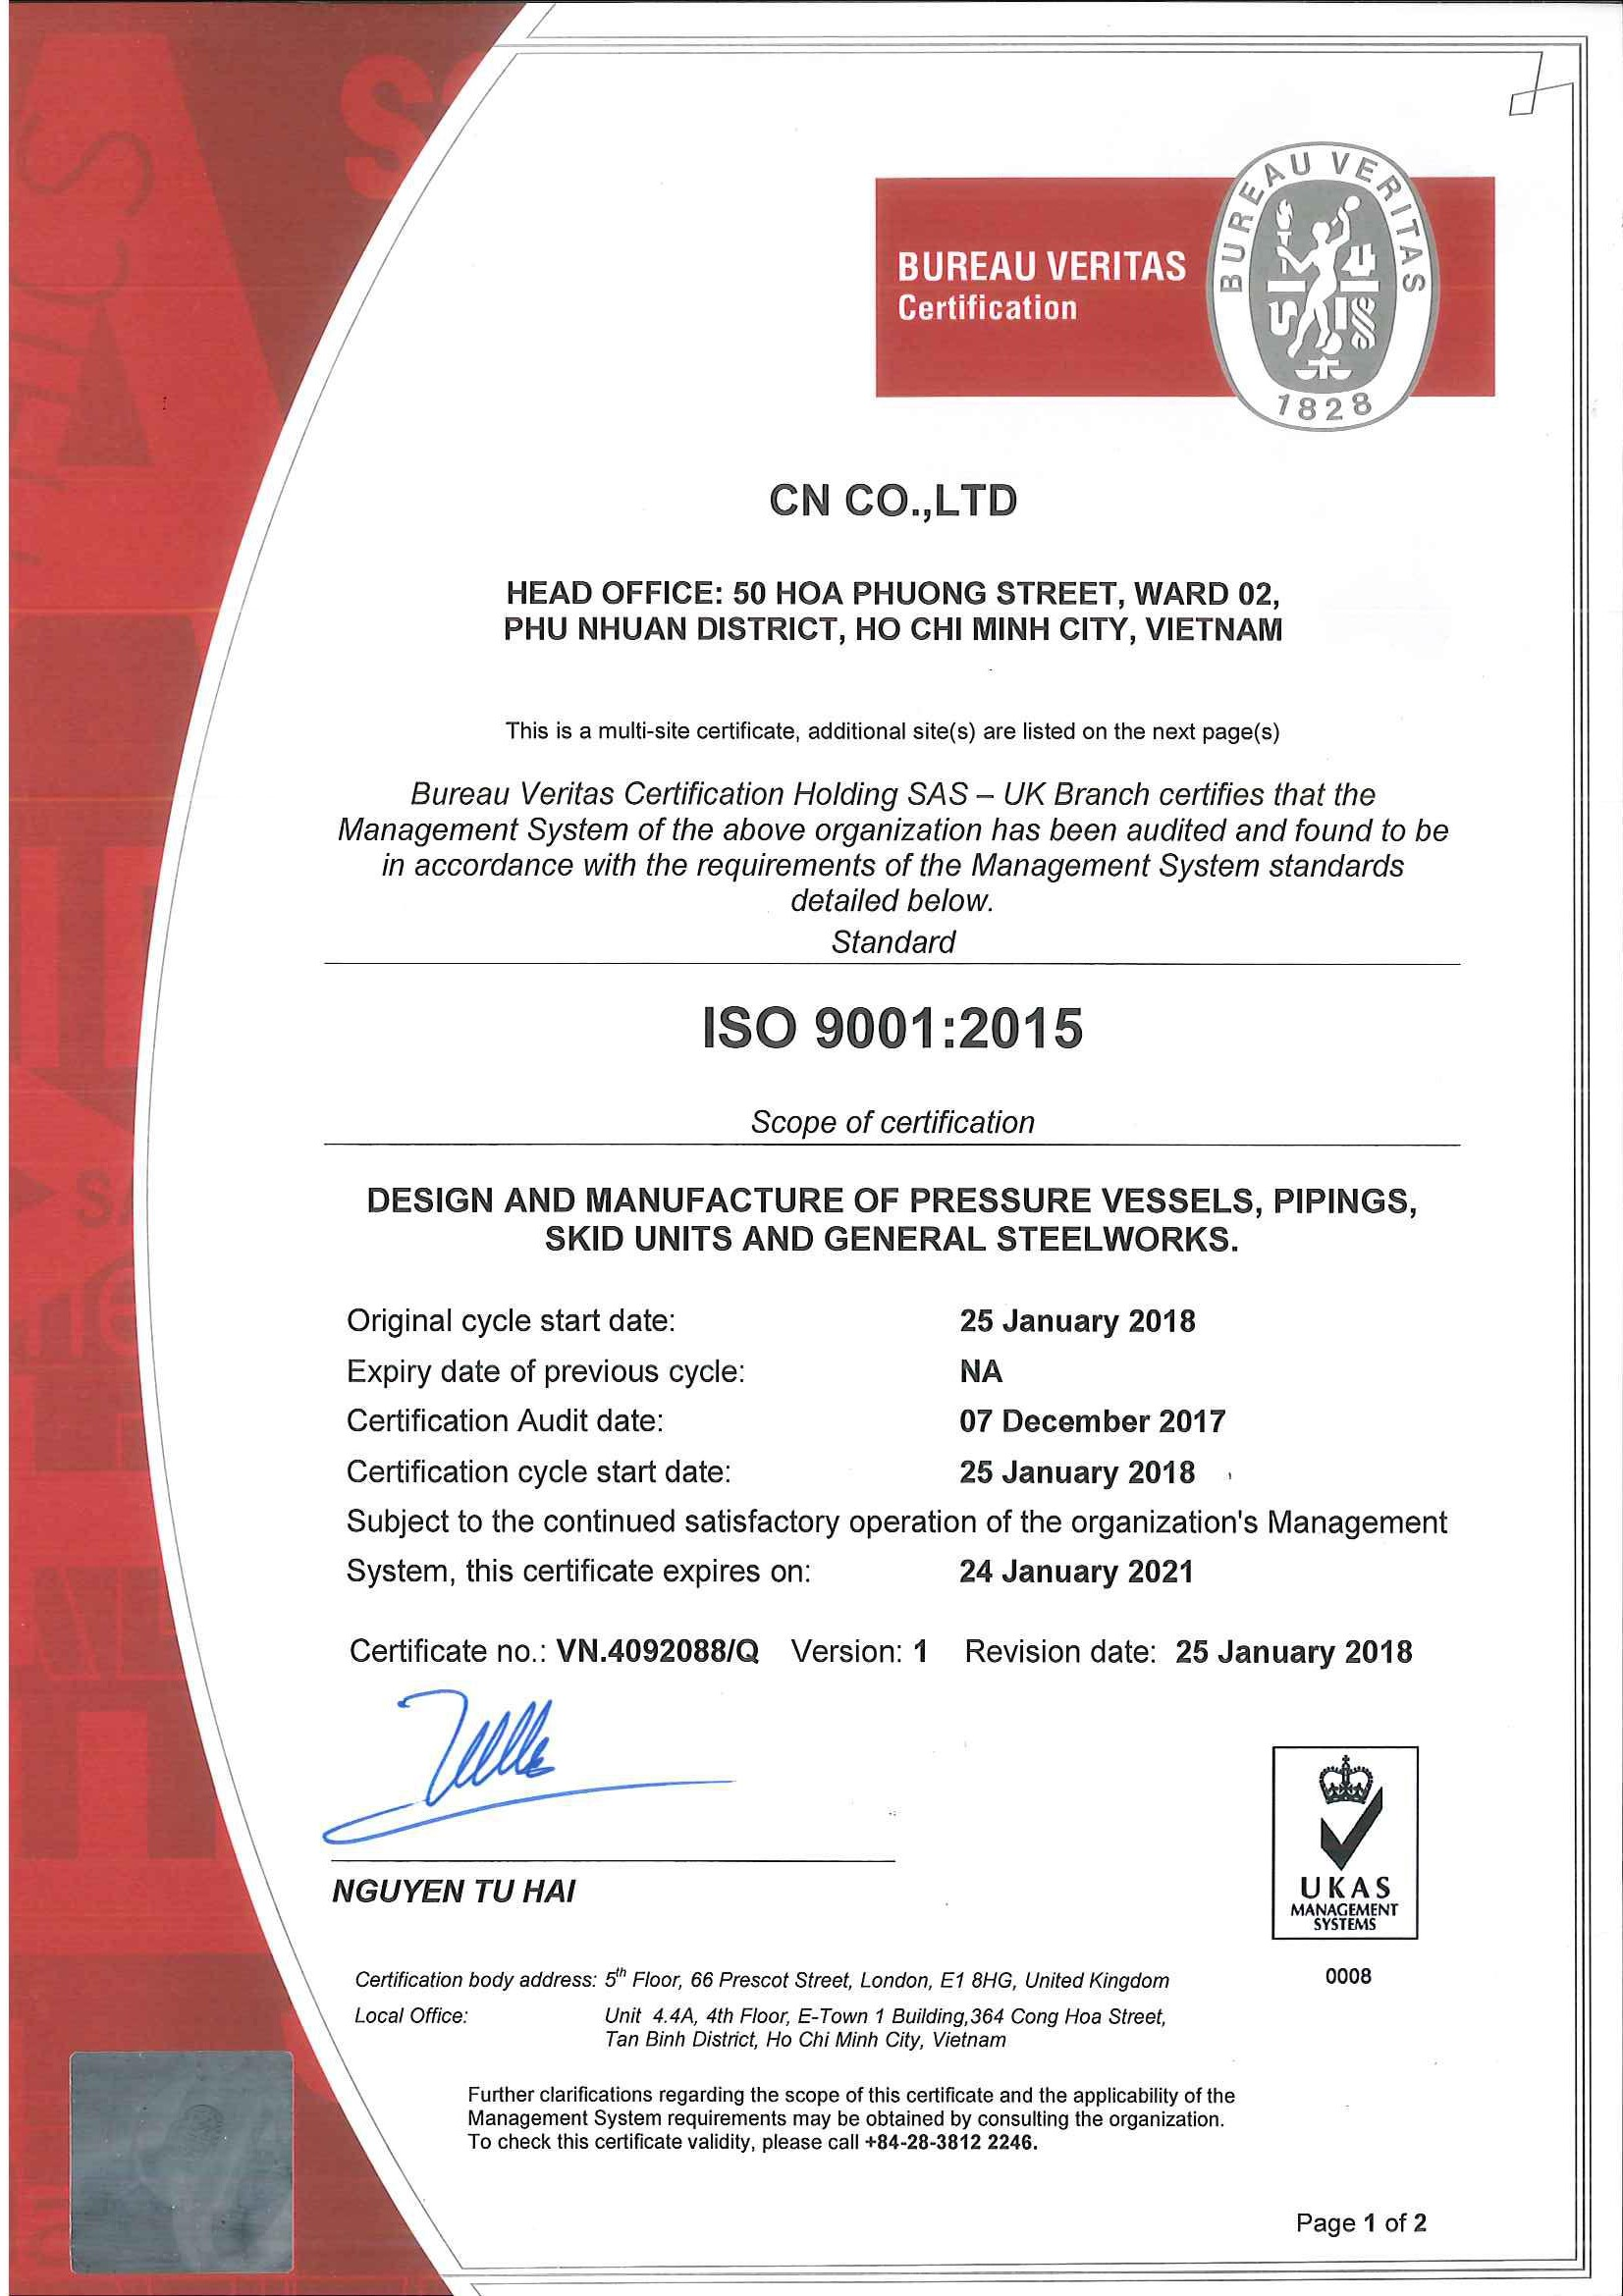 Cni Successfully Obtaining Iso 90012015 Certification Cni Cn